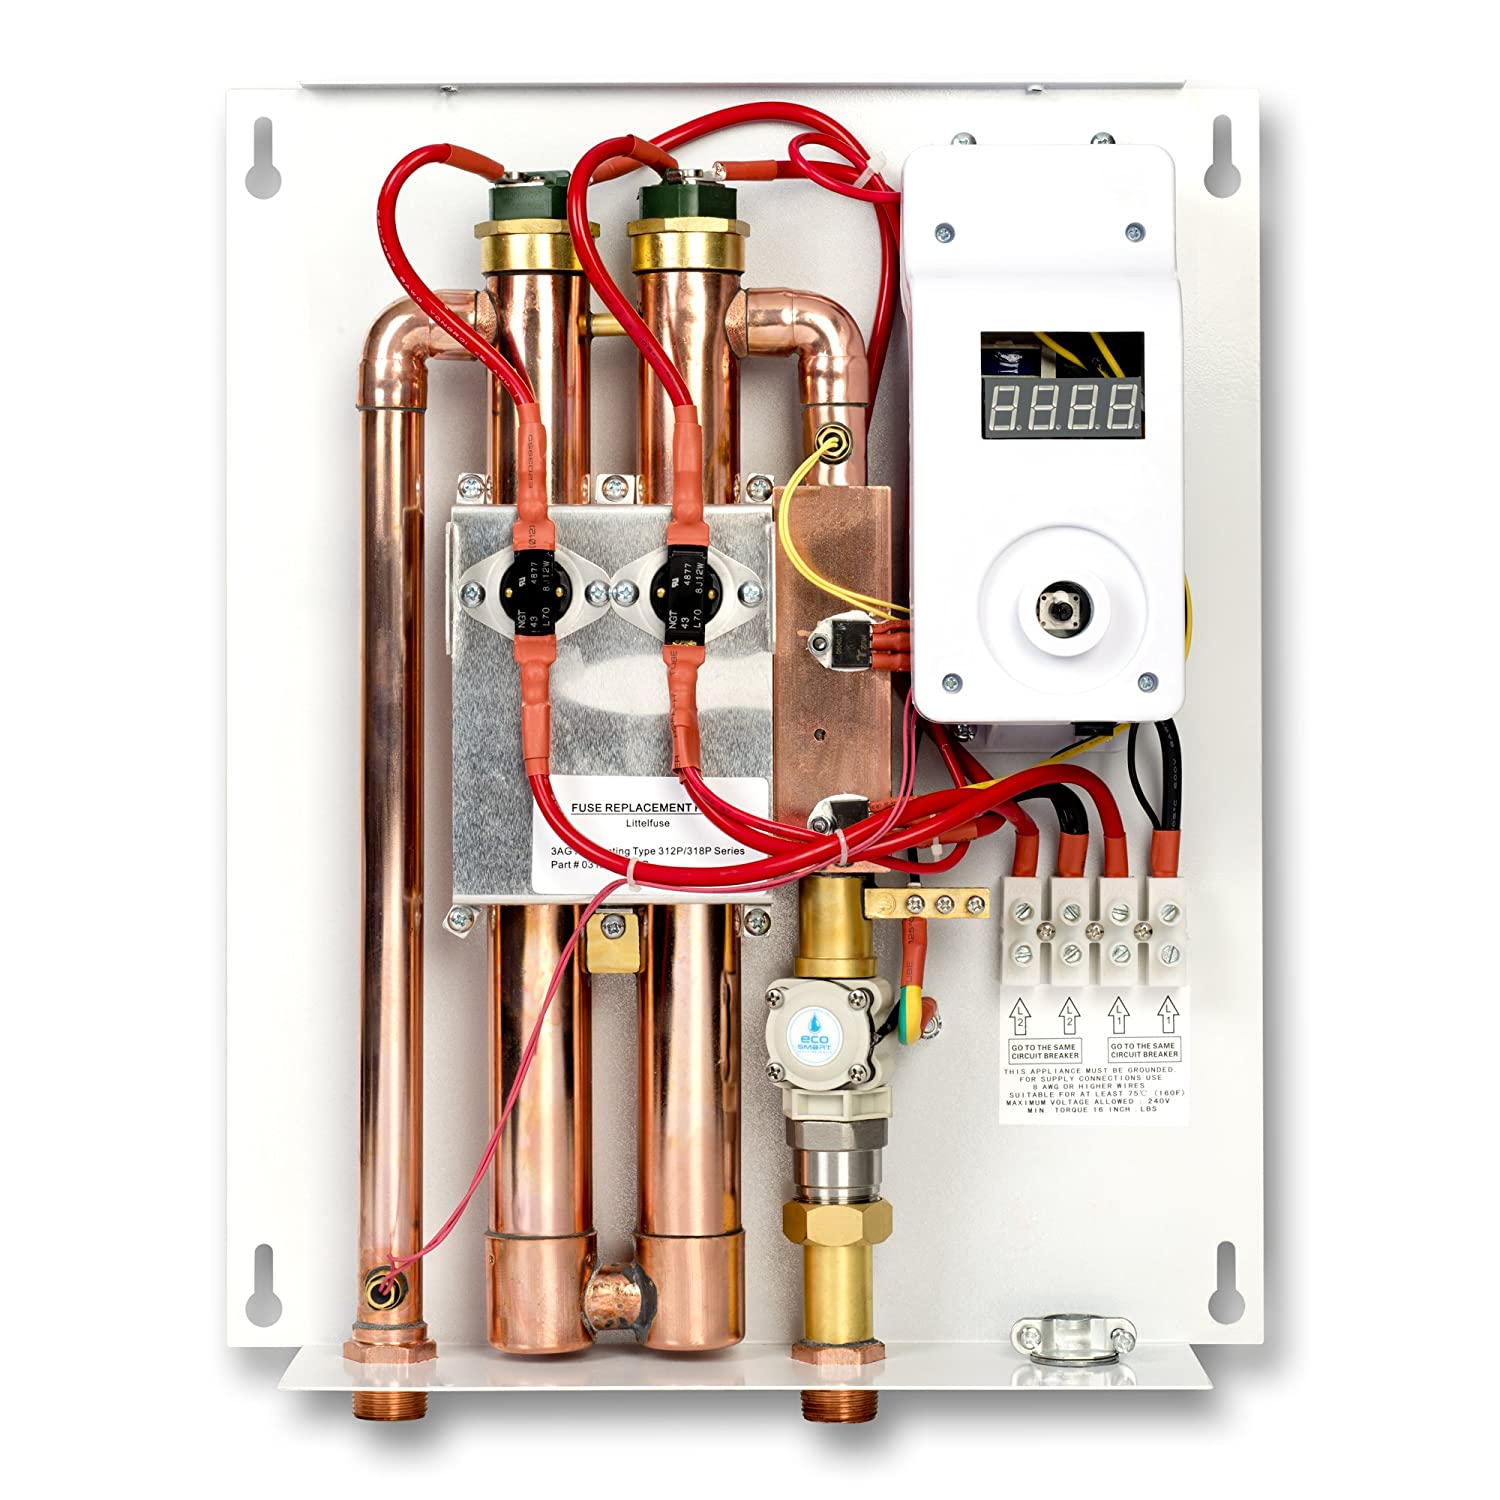 81Tny3DEHPL._SL1500_ ecosmart eco 18 electric tankless water heater, 18 kw at 240 volts rheem rete 27 wiring diagram at couponss.co